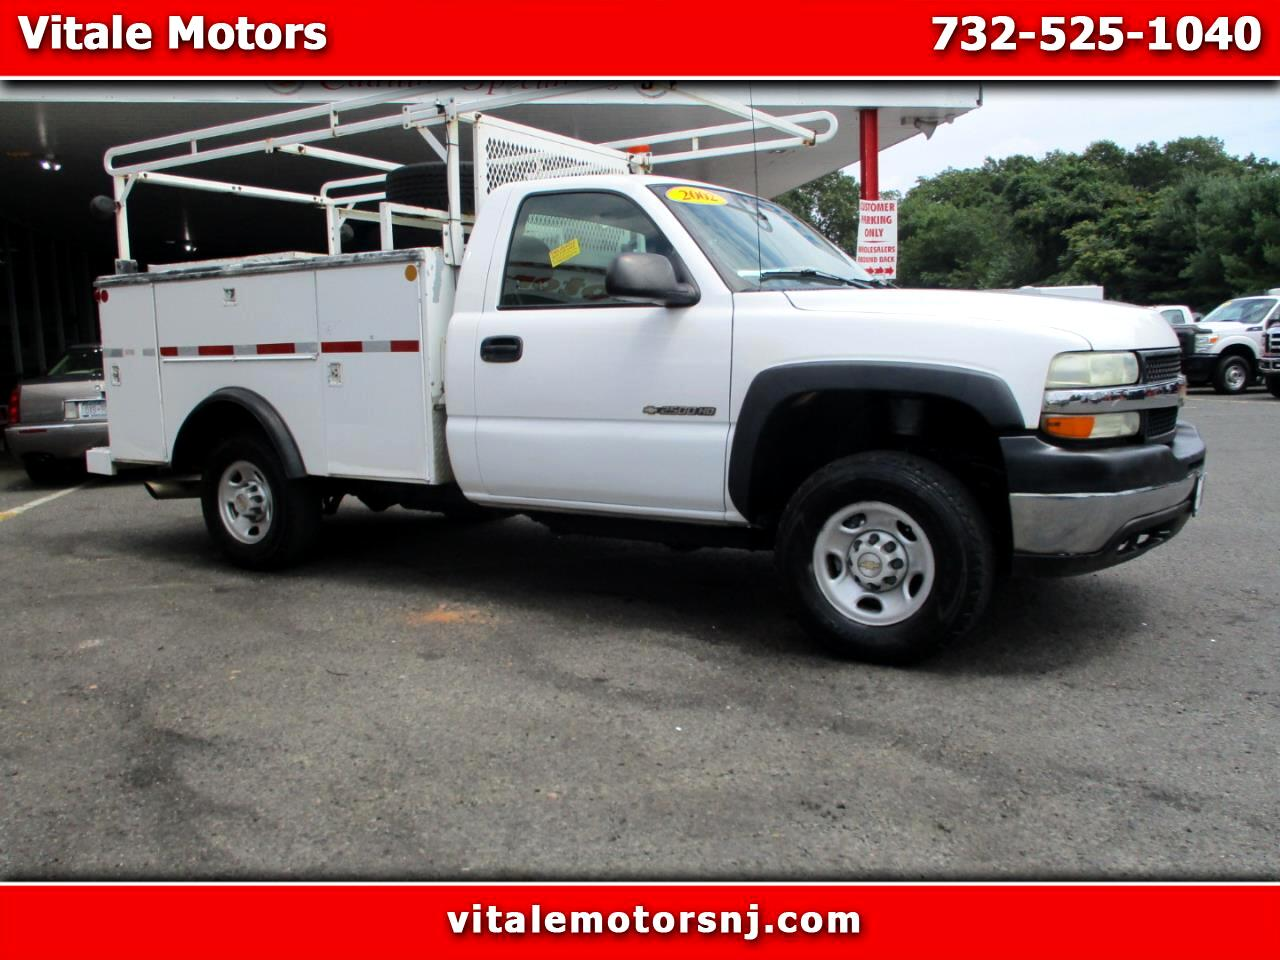 2002 Chevrolet Silverado 2500HD UTILITY BODY 4WD 2500